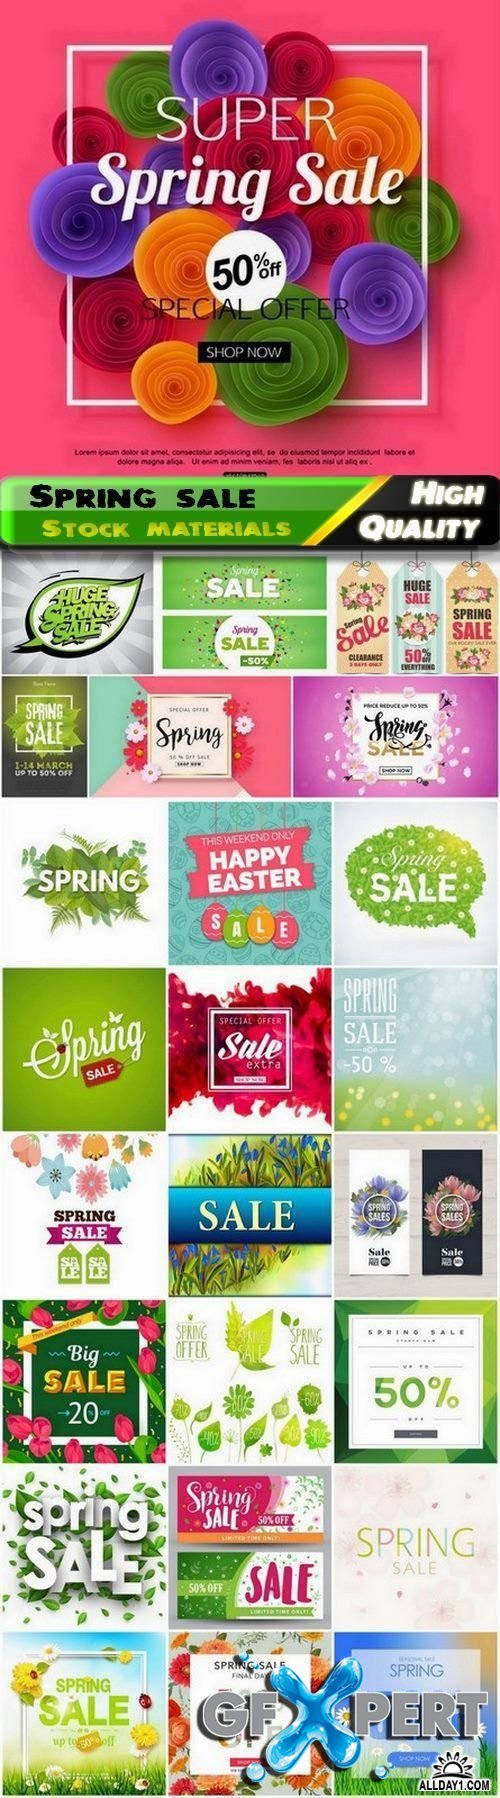 Business flyer poster and card for spring sale and discount 2 25 Eps